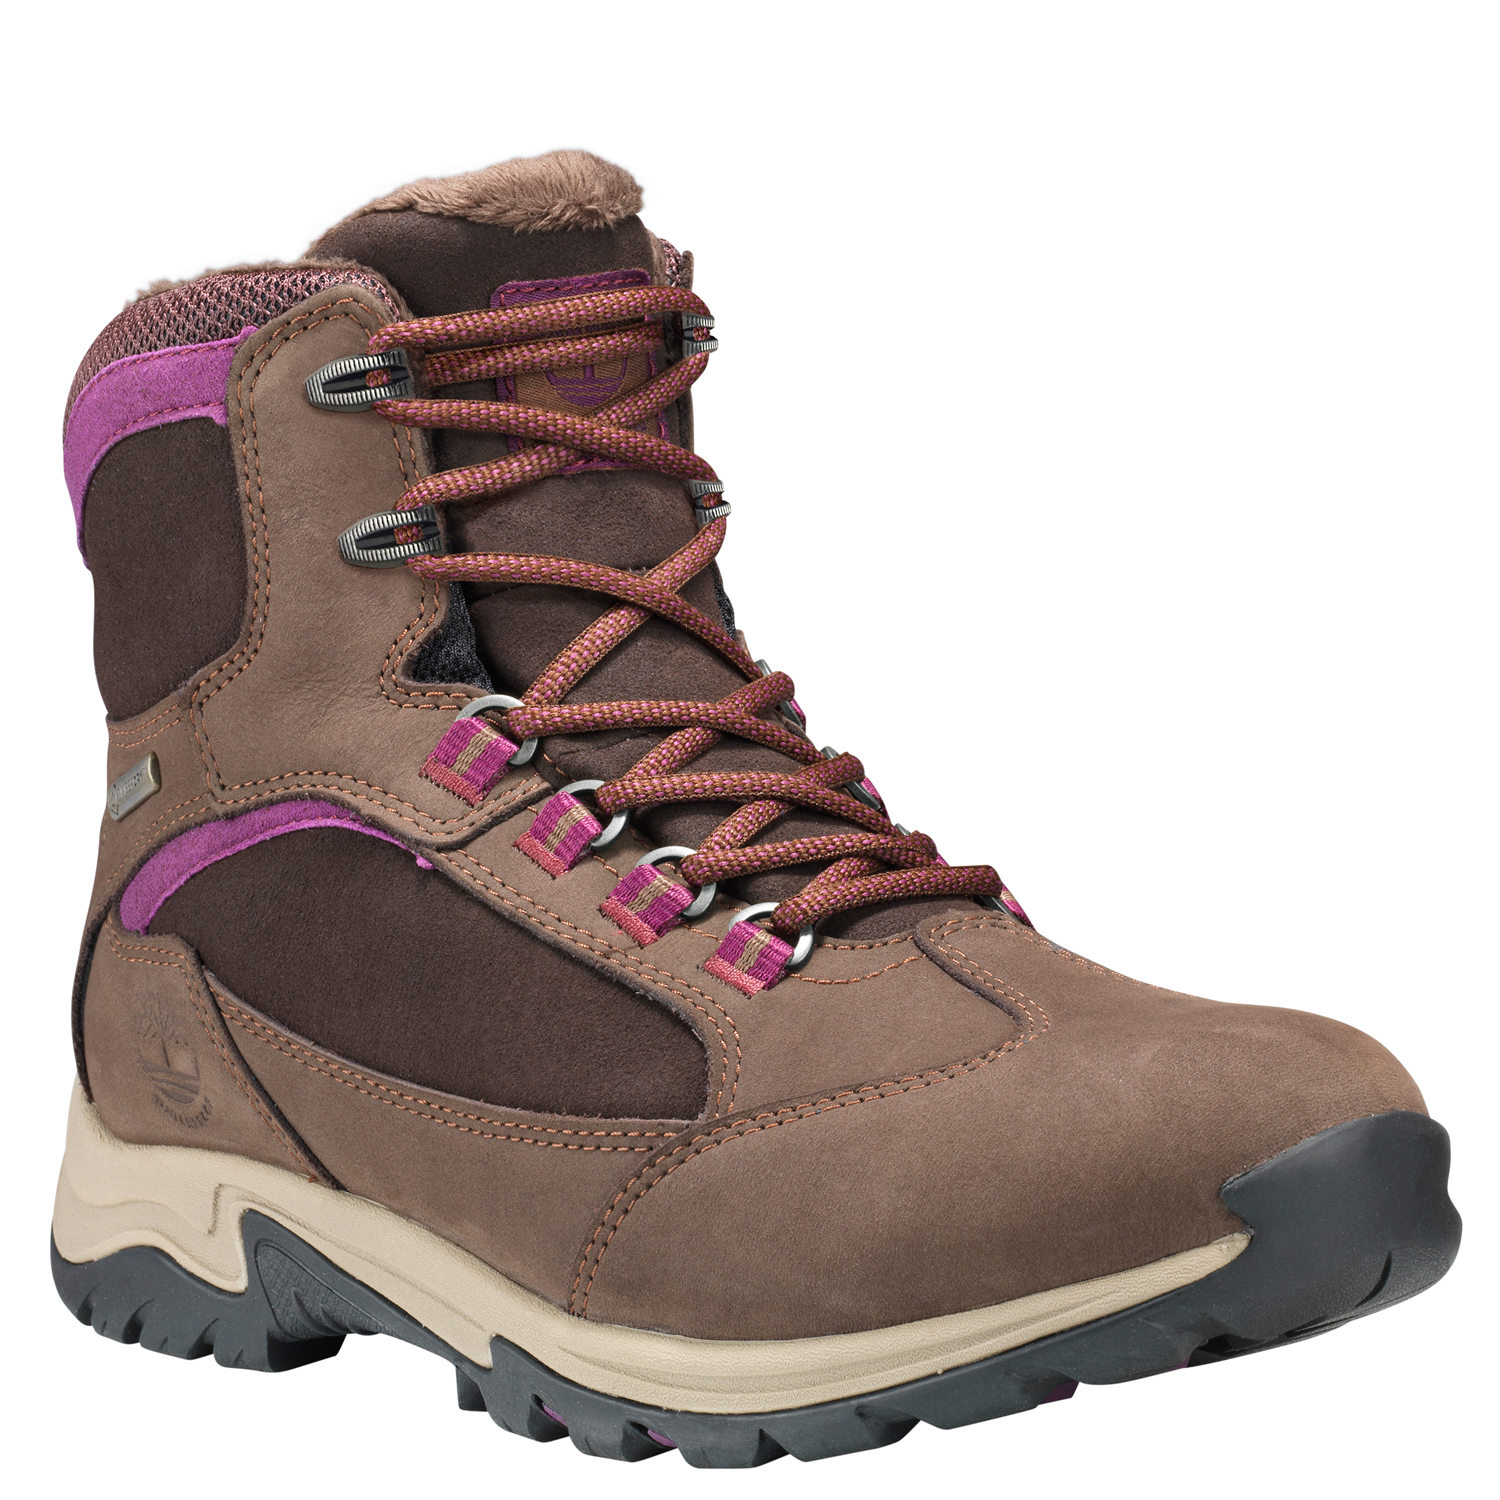 new lifestyle cheap for discount free shipping Timberland Mt. Maddsen Winter Waterproof Hiking Boots - Women's ...